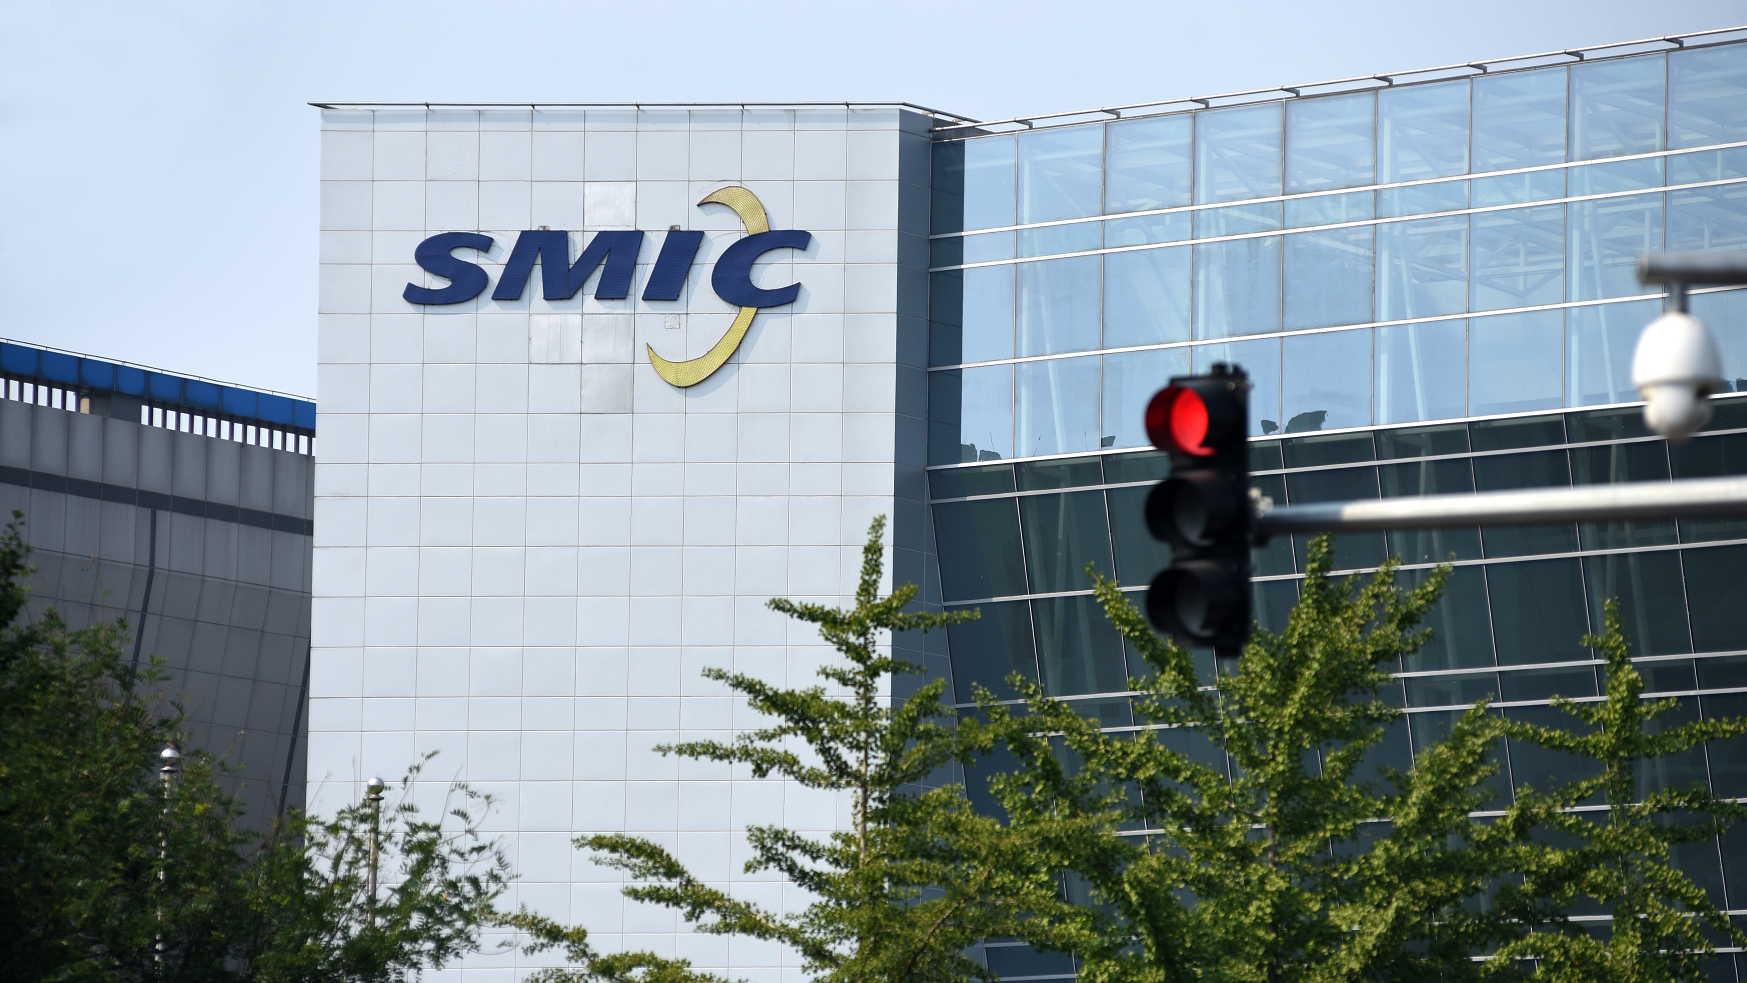 Chinese chipmaker SMIC in 'preliminary exchanges' with US over export restrictions